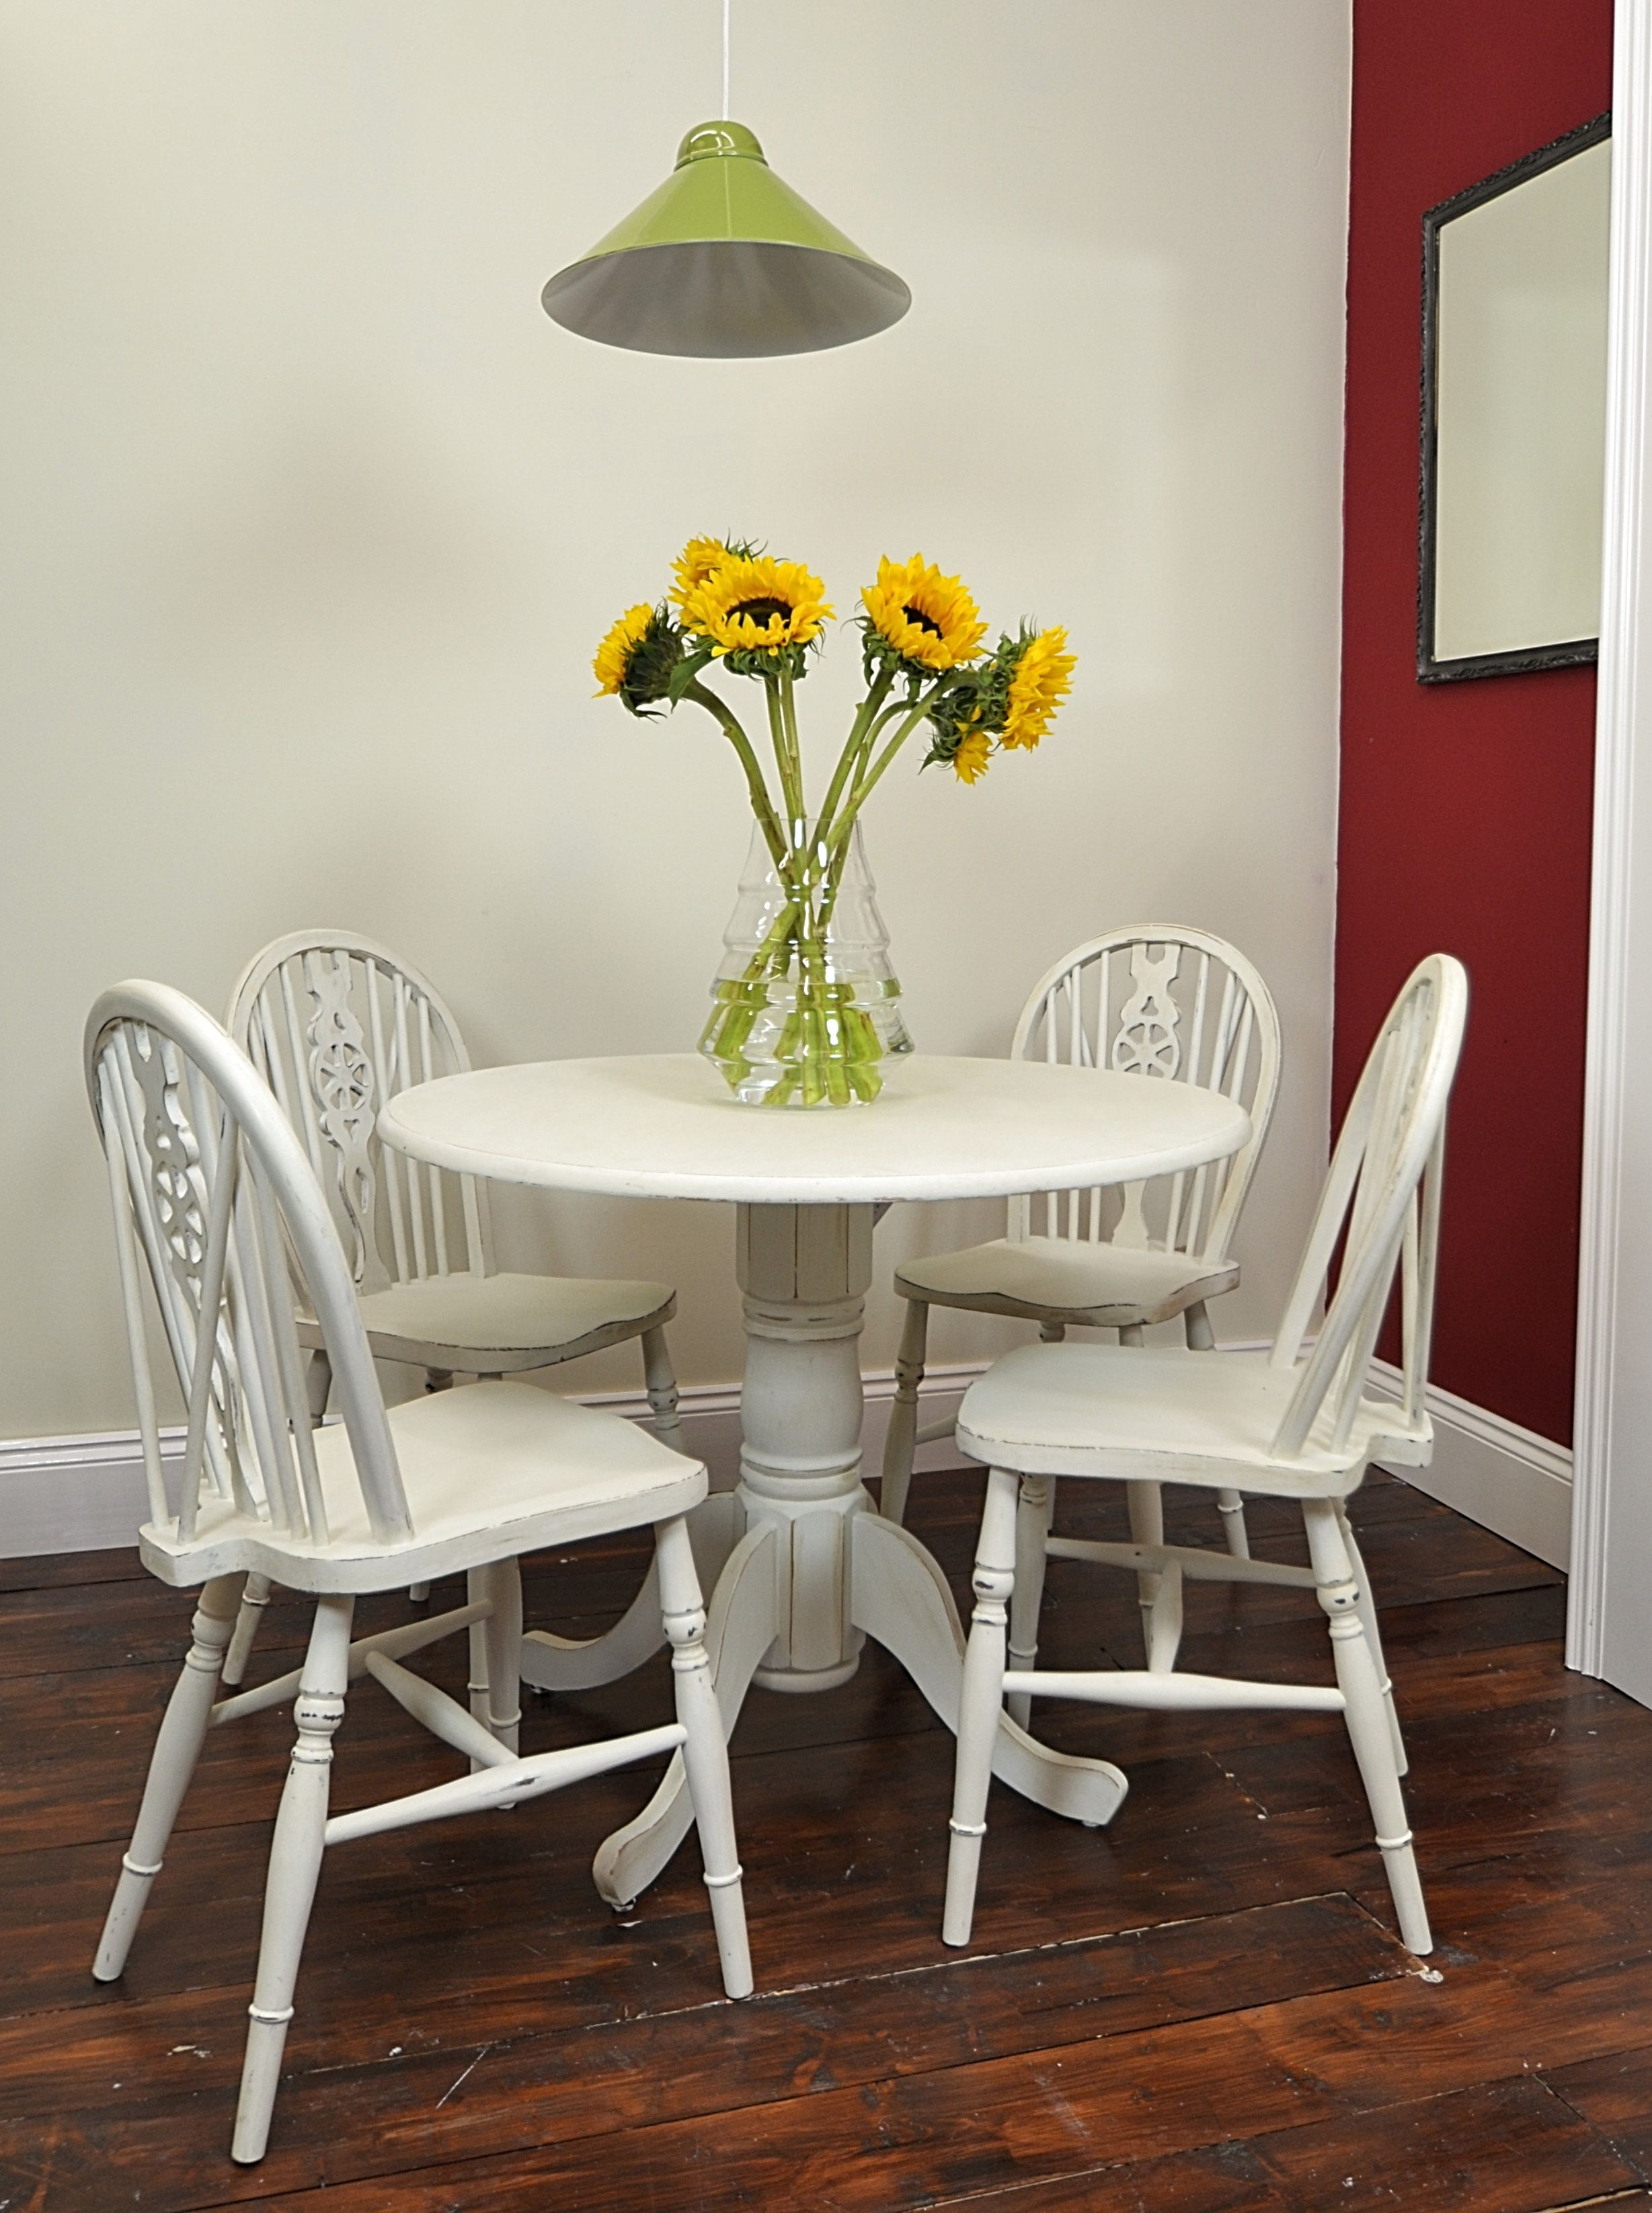 Small Round Table Chair Set Painted In Old White My Favorites - Small white kitchen table and chairs set